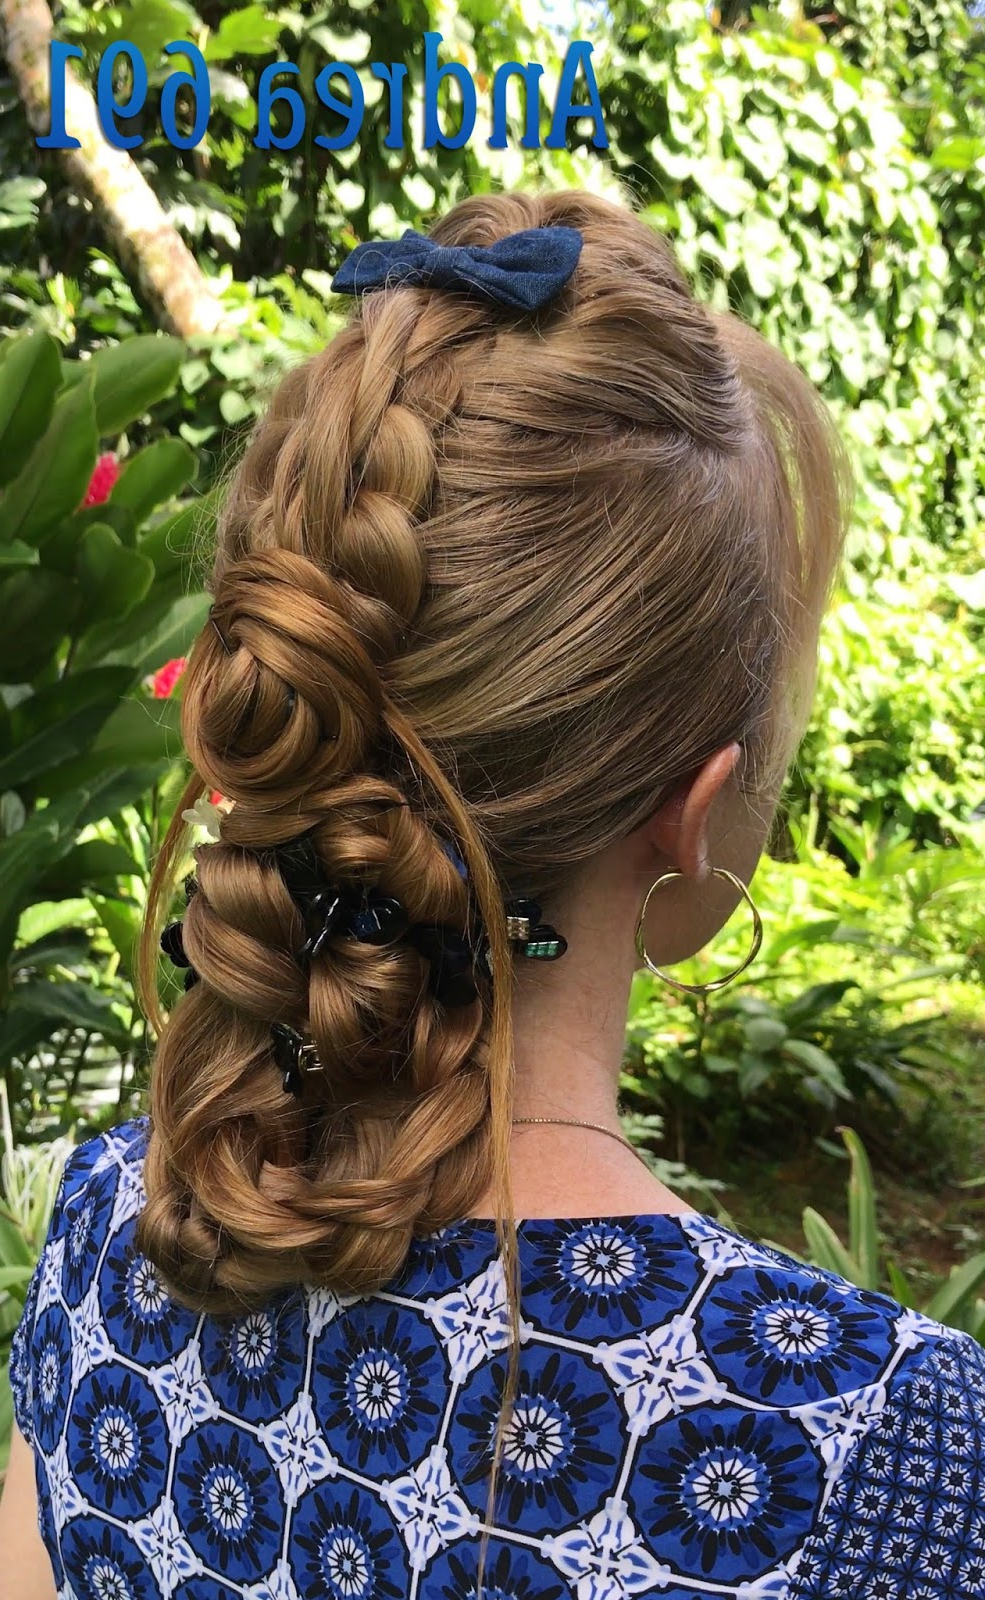 Braids & Hairstyles For Super Long Hair: Stacked Braids Updo Regarding Most Current Stacked Buns Updo Hairstyles (View 16 of 20)